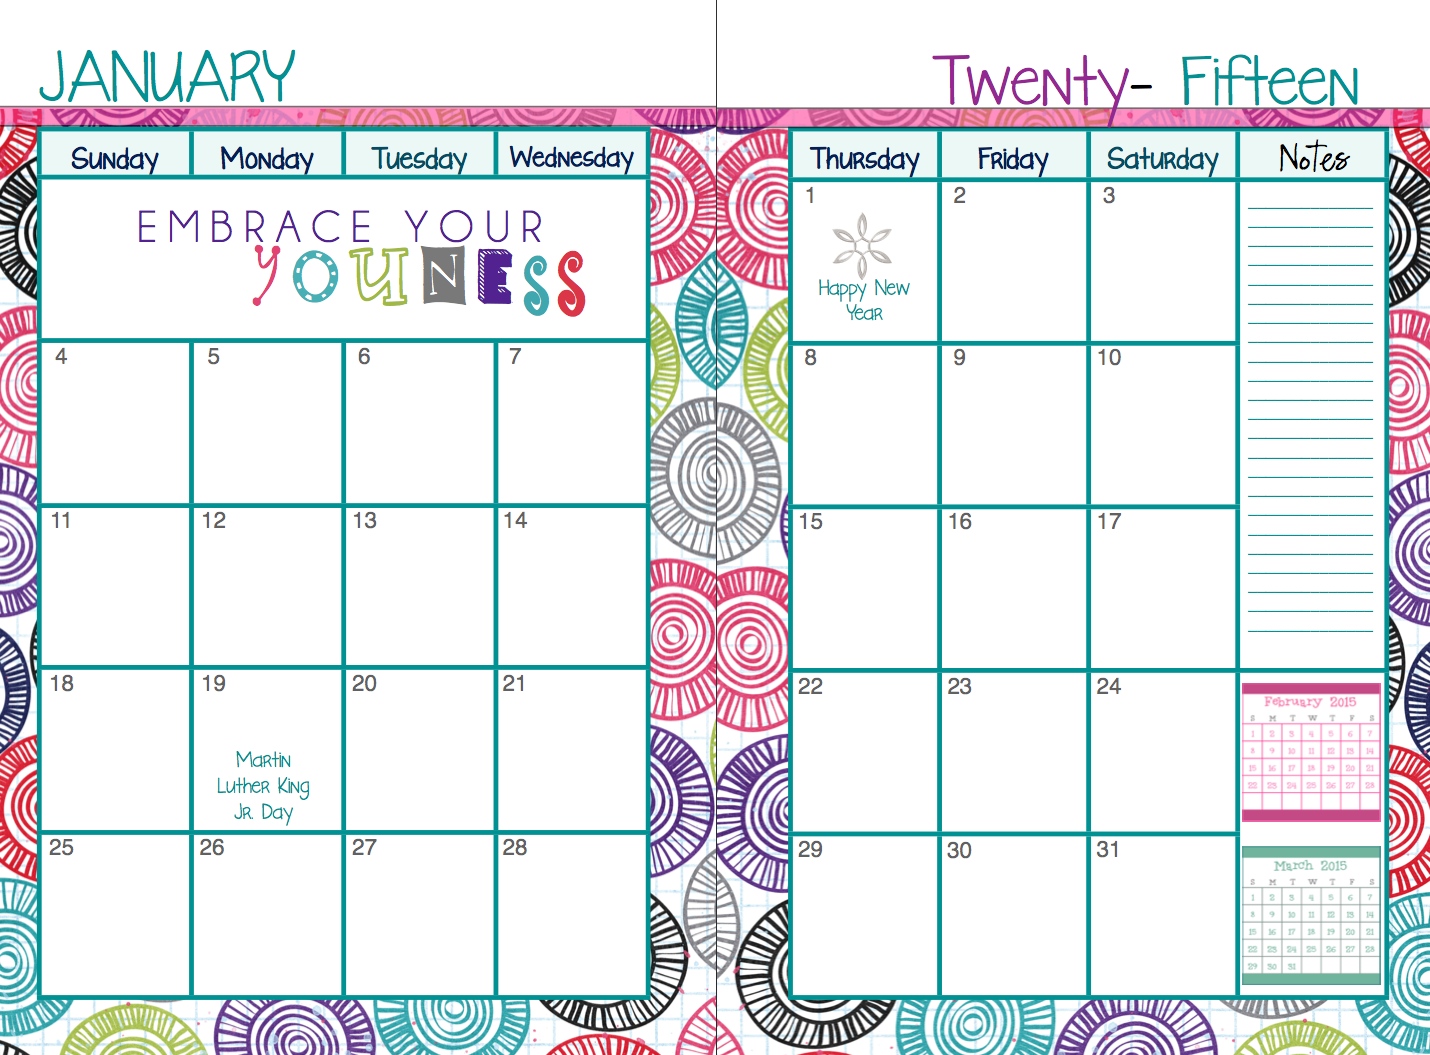 Calendar Quotes For Each Month : Monthly quotes for each month quotesgram